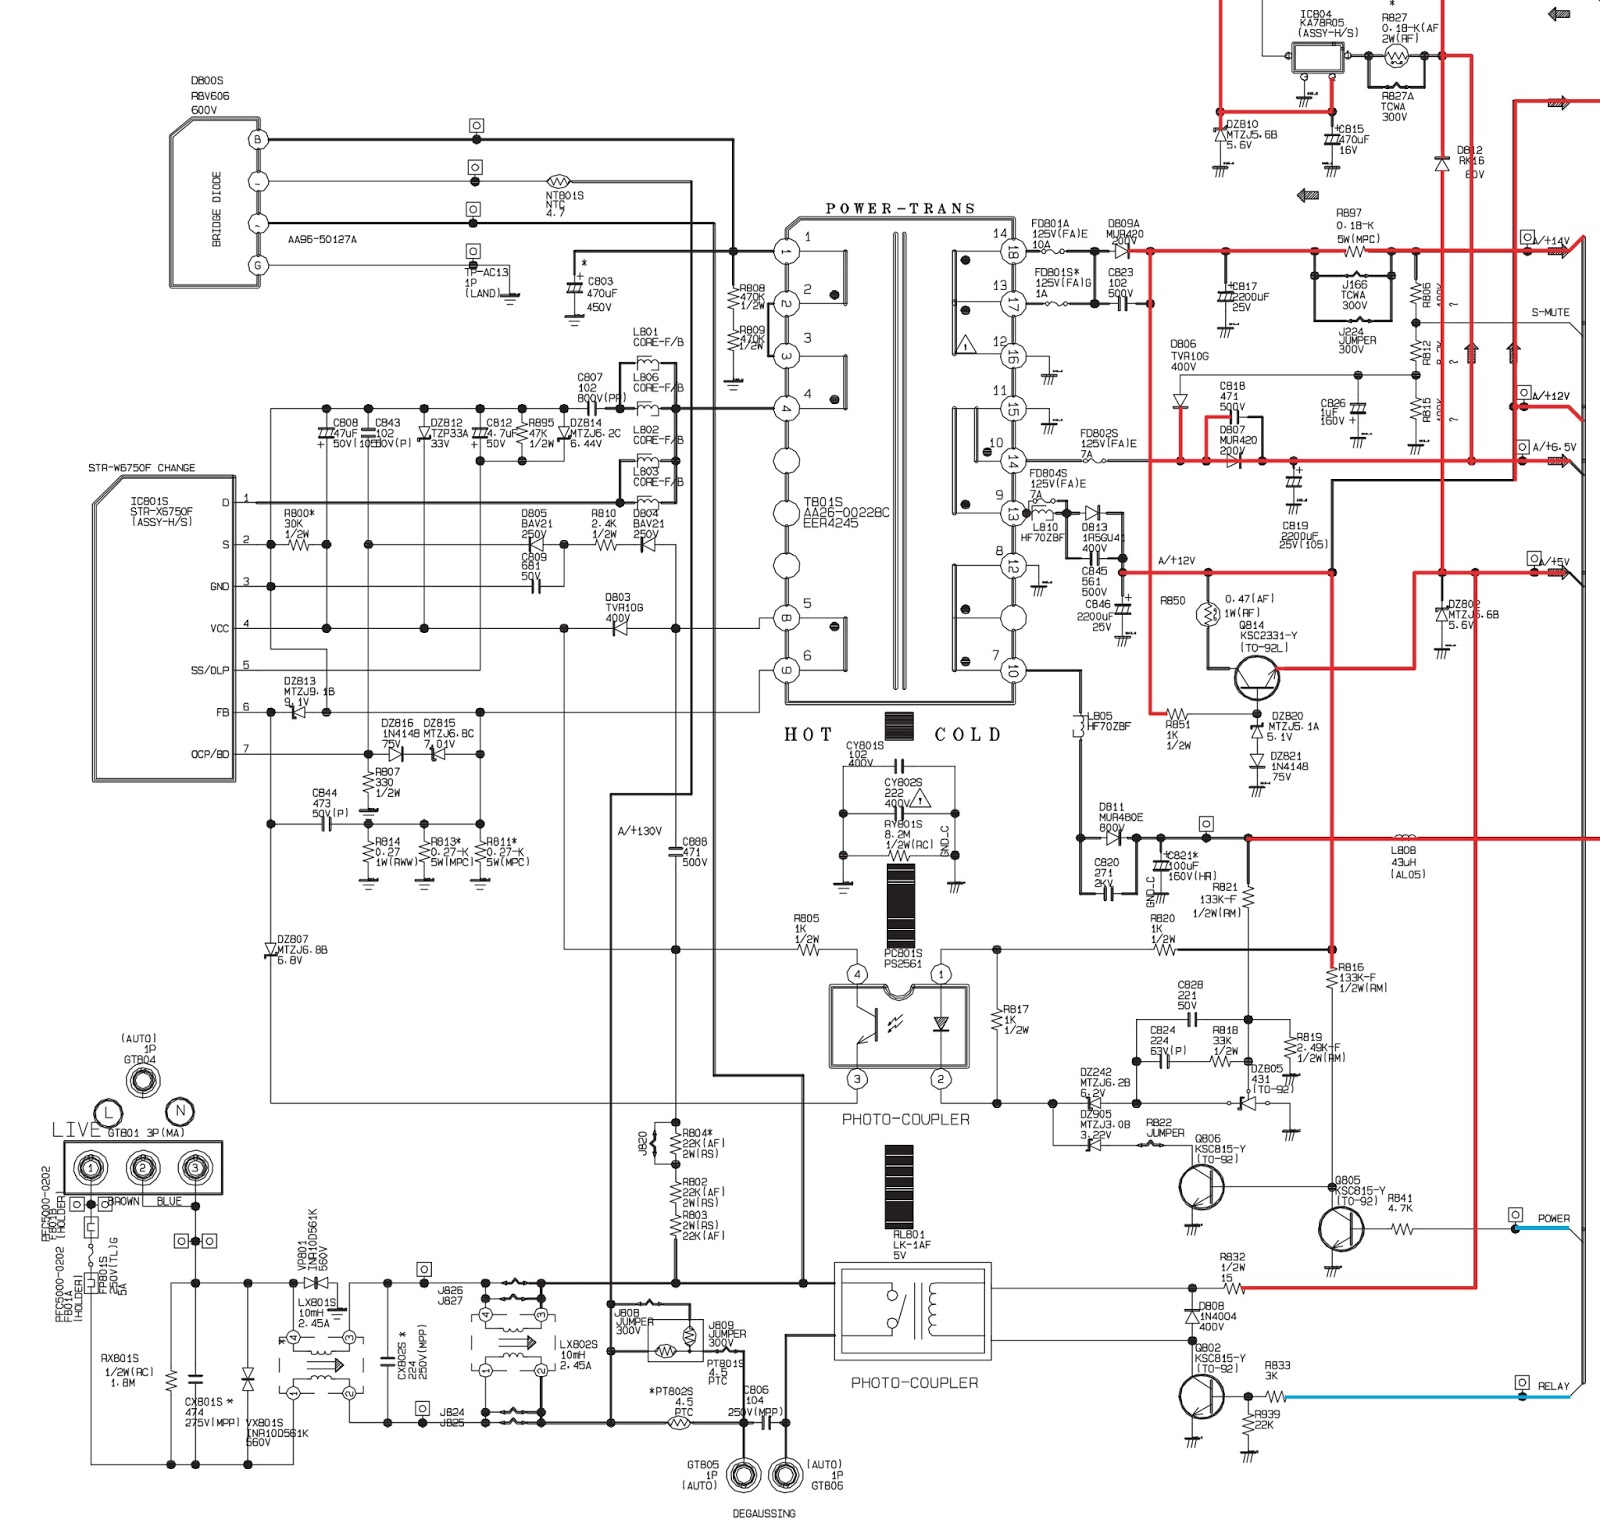 hight resolution of samsung cl29x50 power supply smps schematic circuit diagram str x6750f